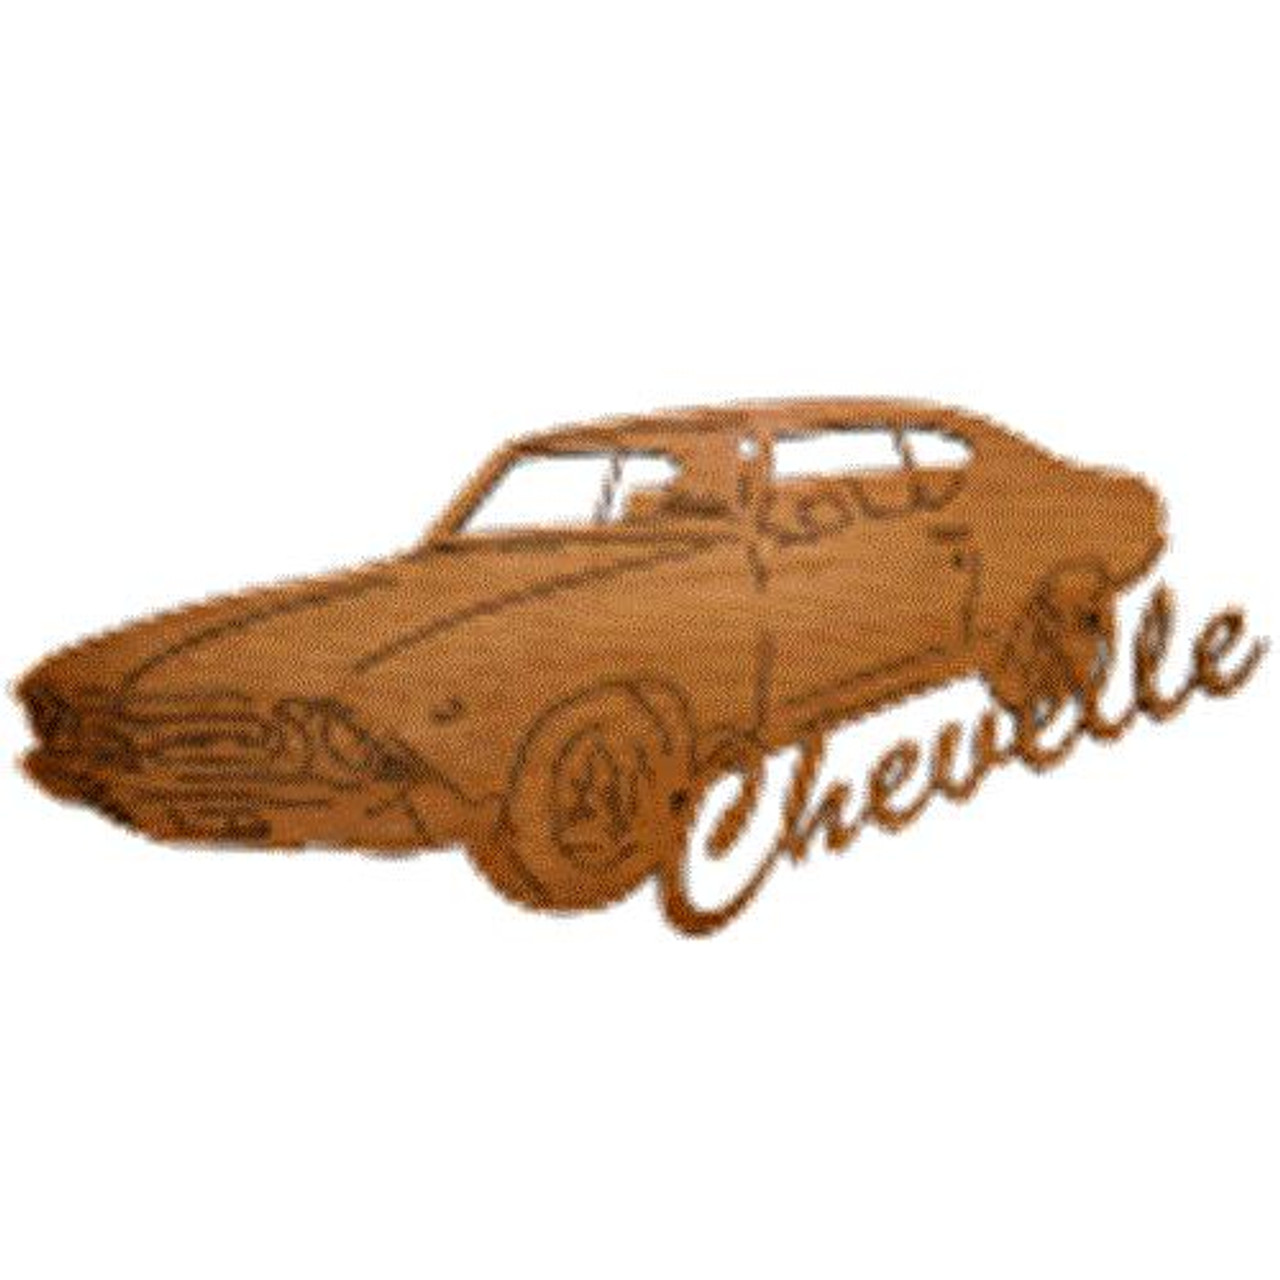 Wildwood Designs Chevelle Muscle Car Plan